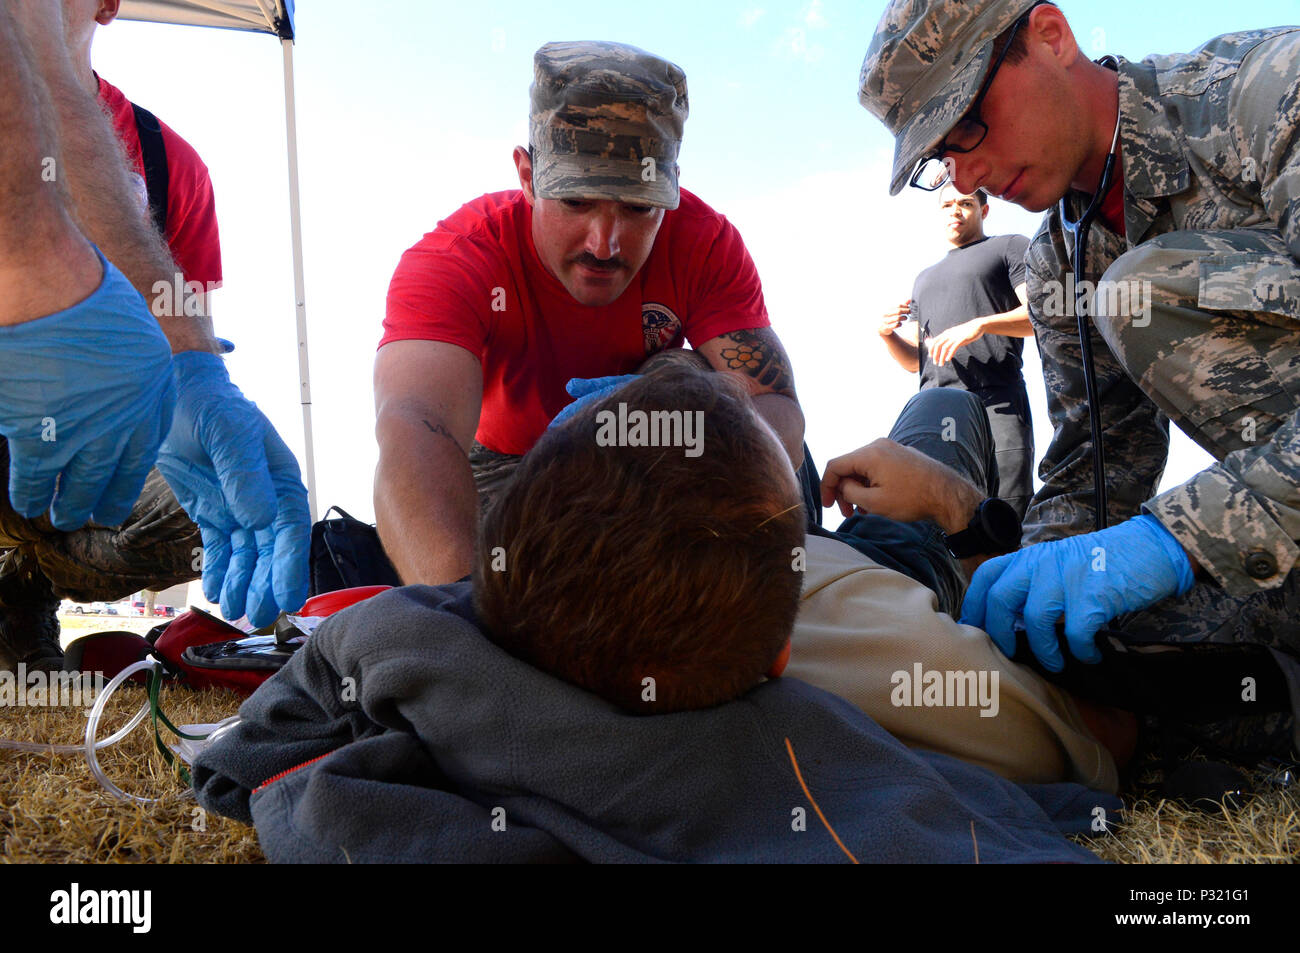 Emergency medical technicians assigned to Scott Air Force Base, Ill., treat a patient in a simulated hyperthermia scenario during the 2016 EMT Rodeo Aug. 26, 2016 at Cannon Air Force Base, N.M. Cannon's EMT Rodeo tests the skills of medical professionals from across the Air Force through a series of innovative, high-pressure scenarios. (U.S. Air Force photo by Tech. Sgt. Manuel J. Martinez)) - Stock Image